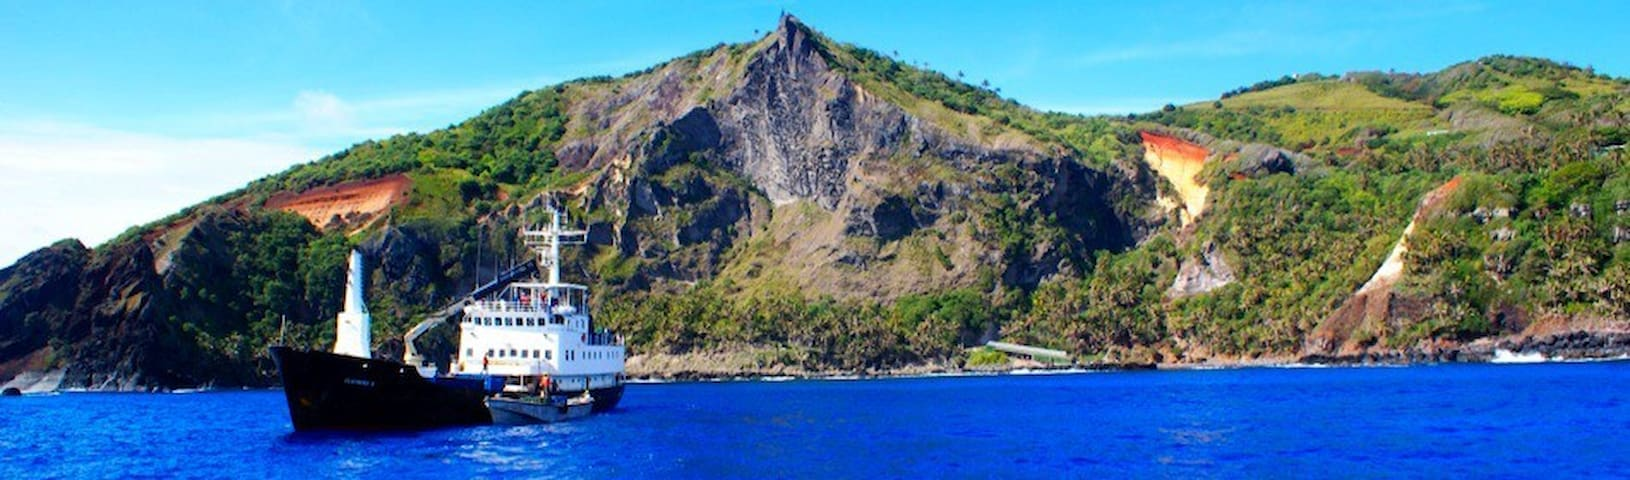 Getting to Pitcairn is a highlight for all and a significant part of the total adventure. It includes two nights aboard a working cargo ship that visits Pitcairn only a handful of times throughout the year. The cargo ship departs from French Polynesia which means you need to make your way to Papeete, Tahiti and then fly 4.5 hours from Papeete to Mangareva where you'll catch the freighter.